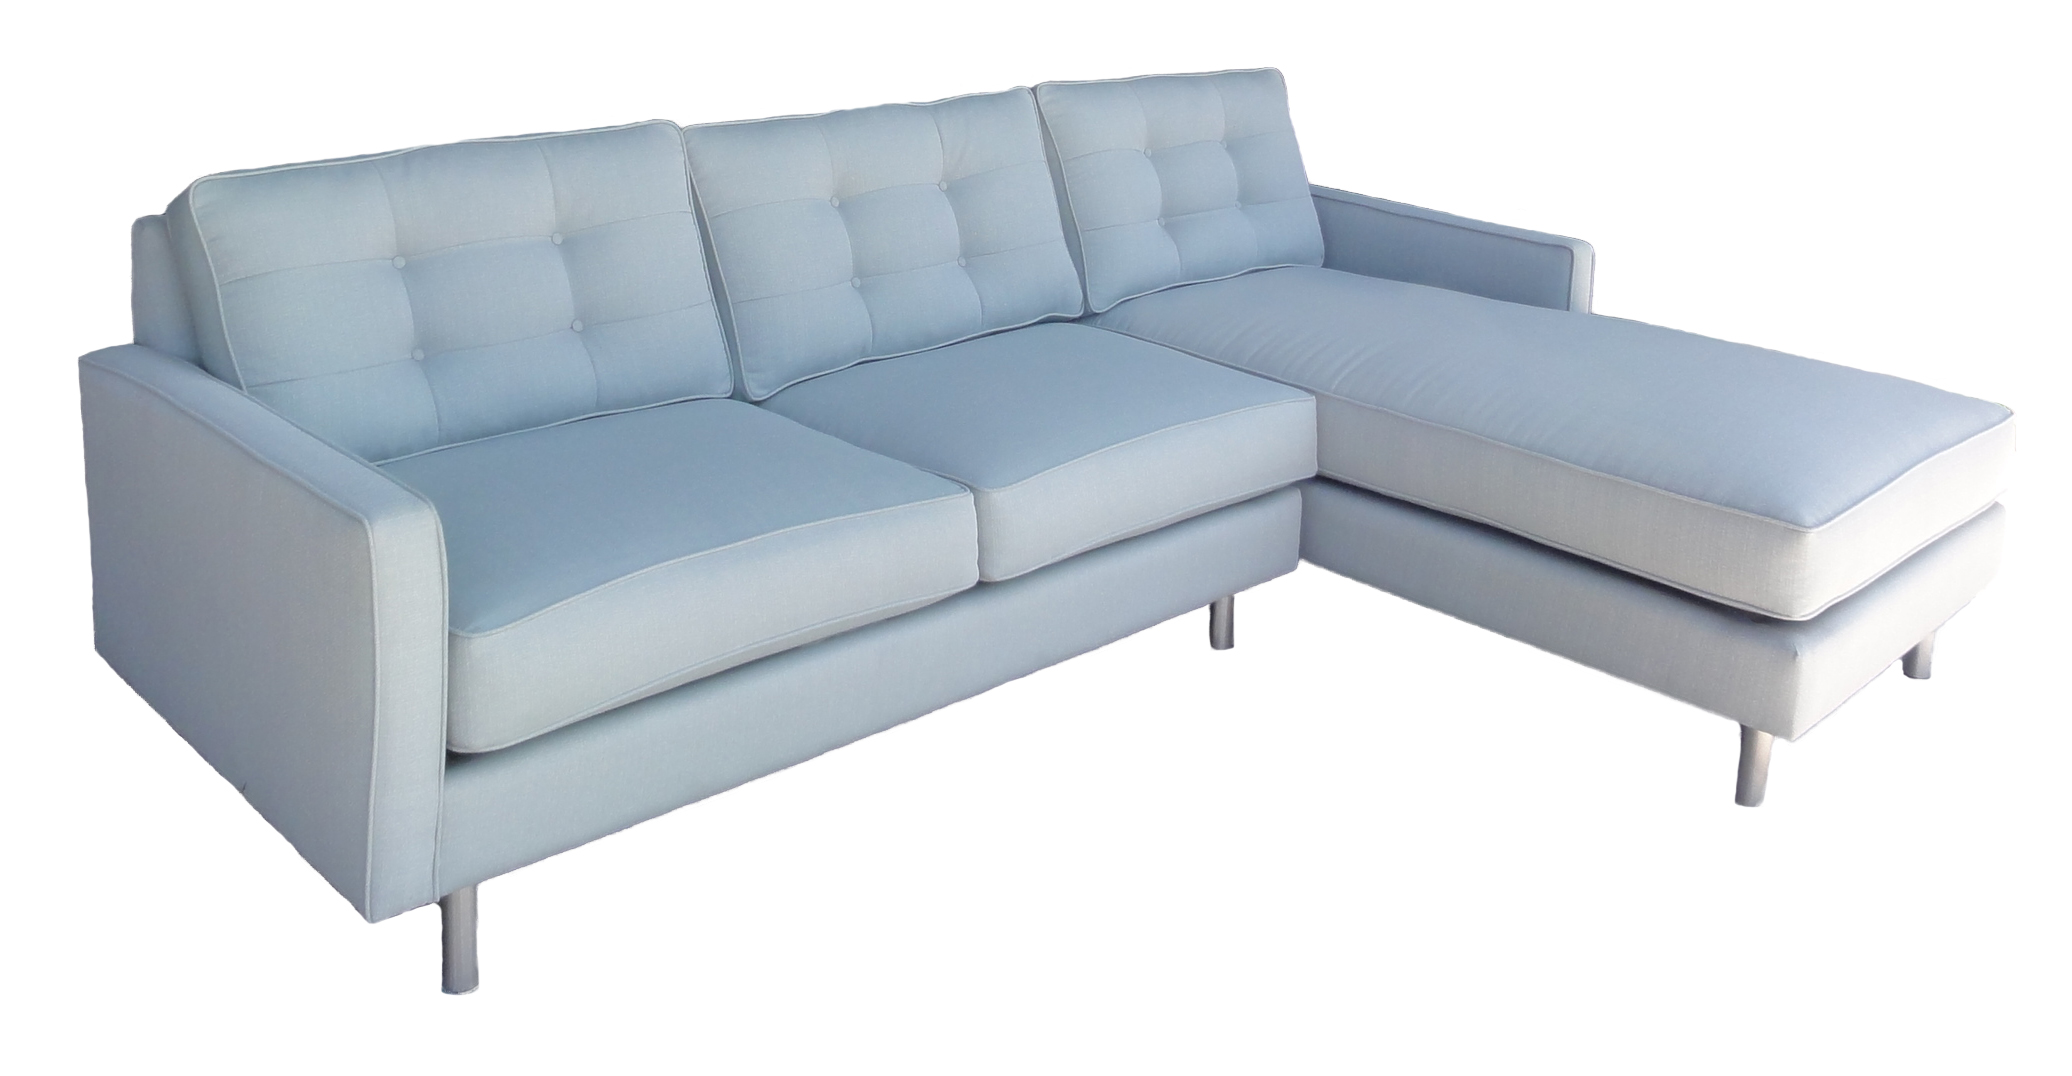 Slade-sectional-santa-barbara-design-center-2